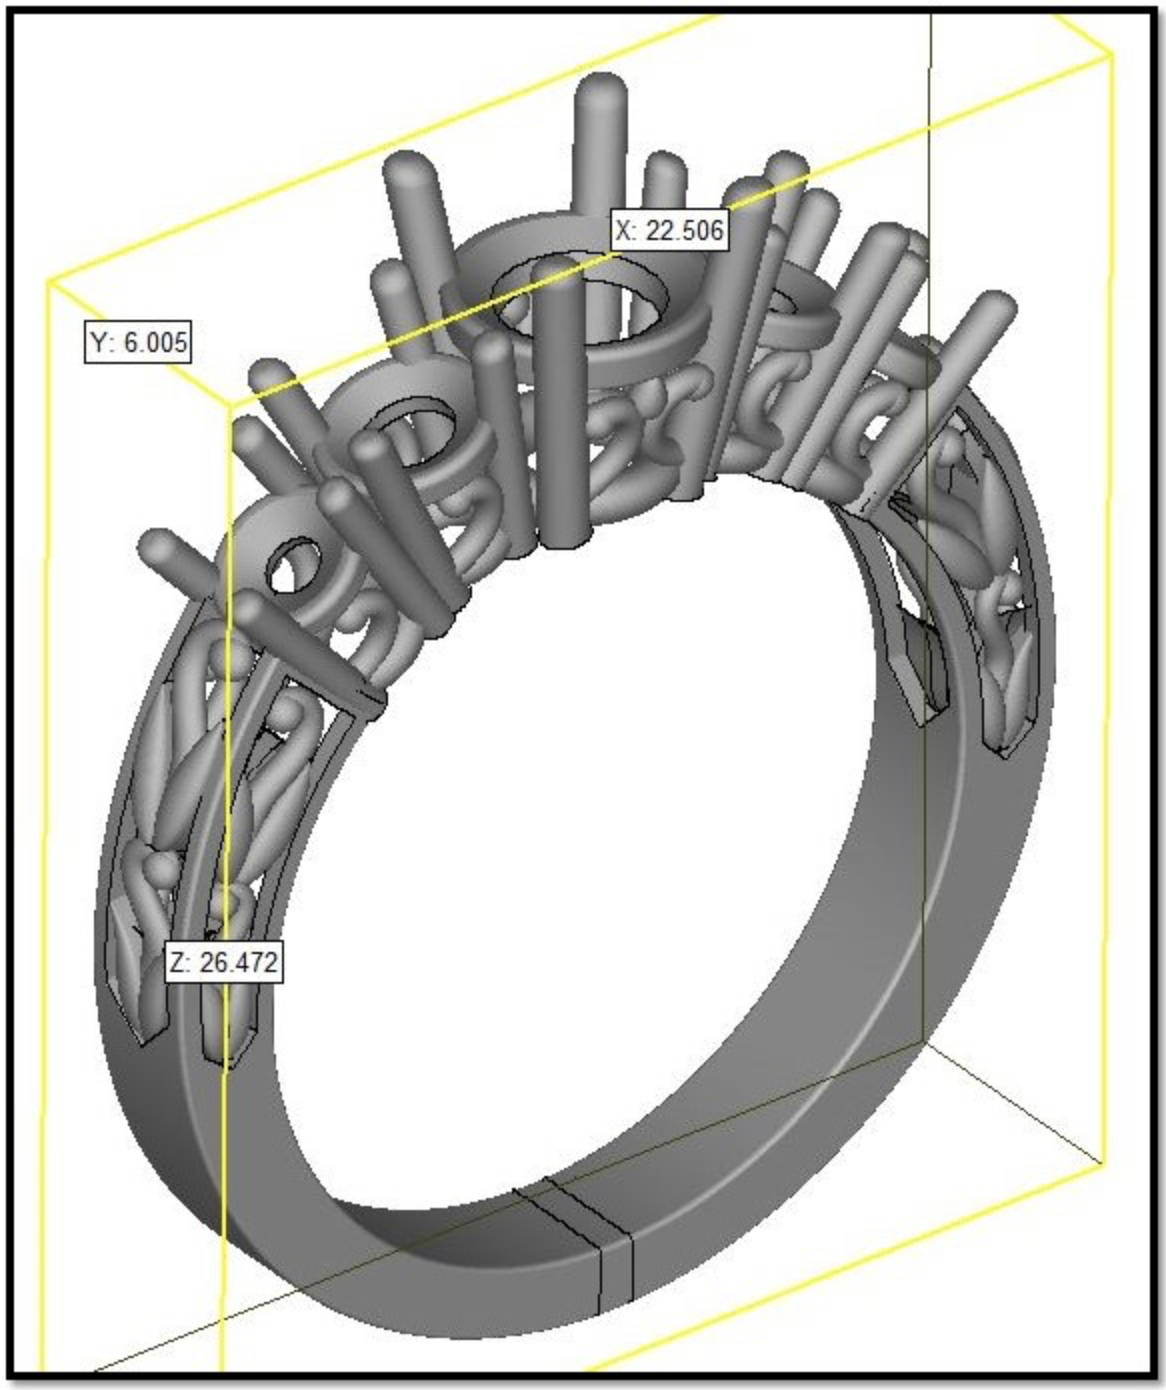 CAD model of a custom engagement ring